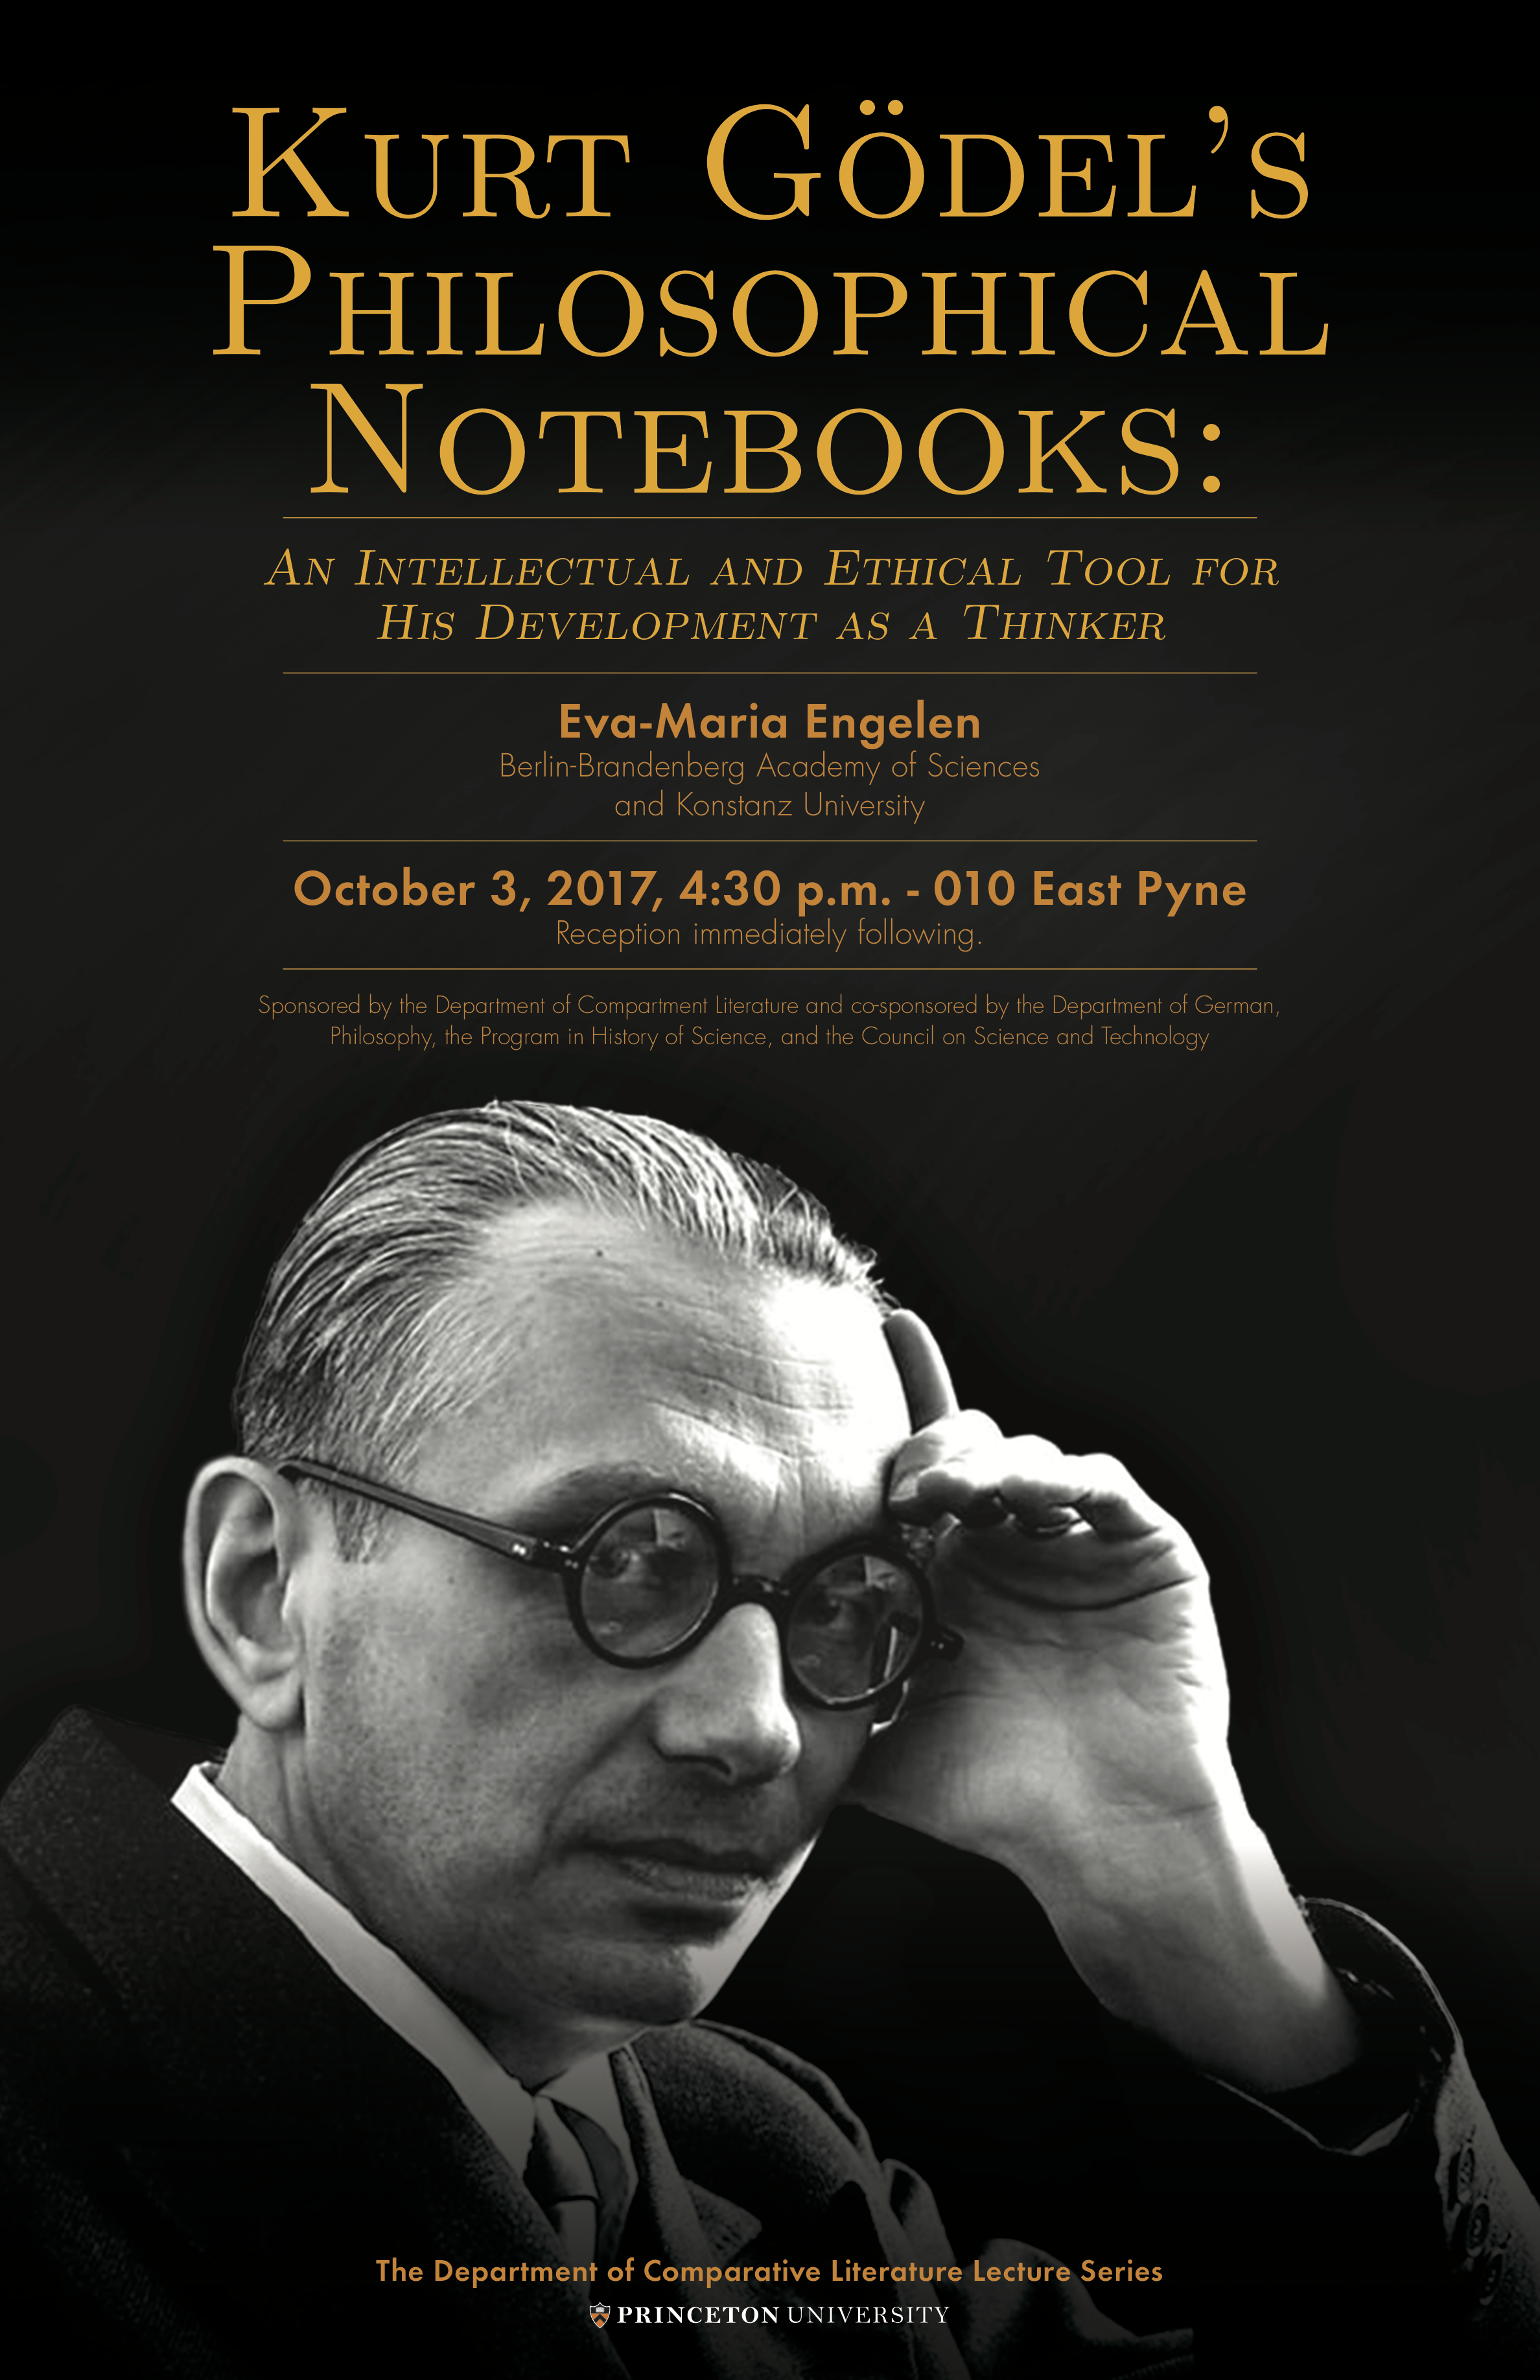 Kurt Gödel's Philosphical Notebooks: An Intellectual and Ethical Tool for His Development as a Thinker by Eva-Maria Engelen